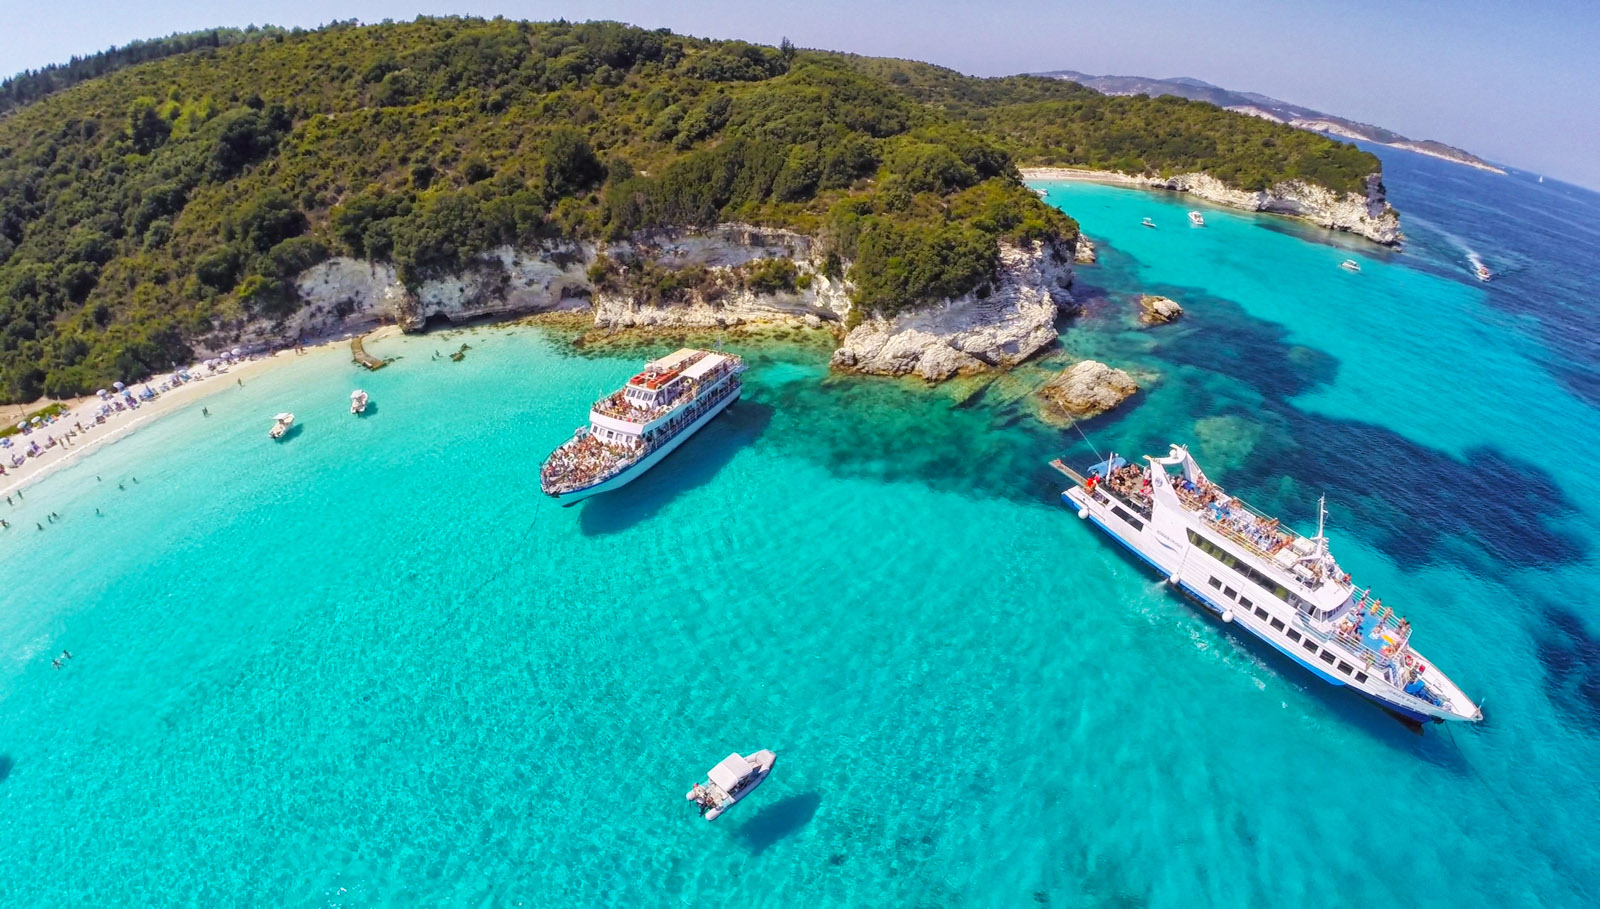 The Boat Trip from Corfu to Paxos and Antipaxos islands